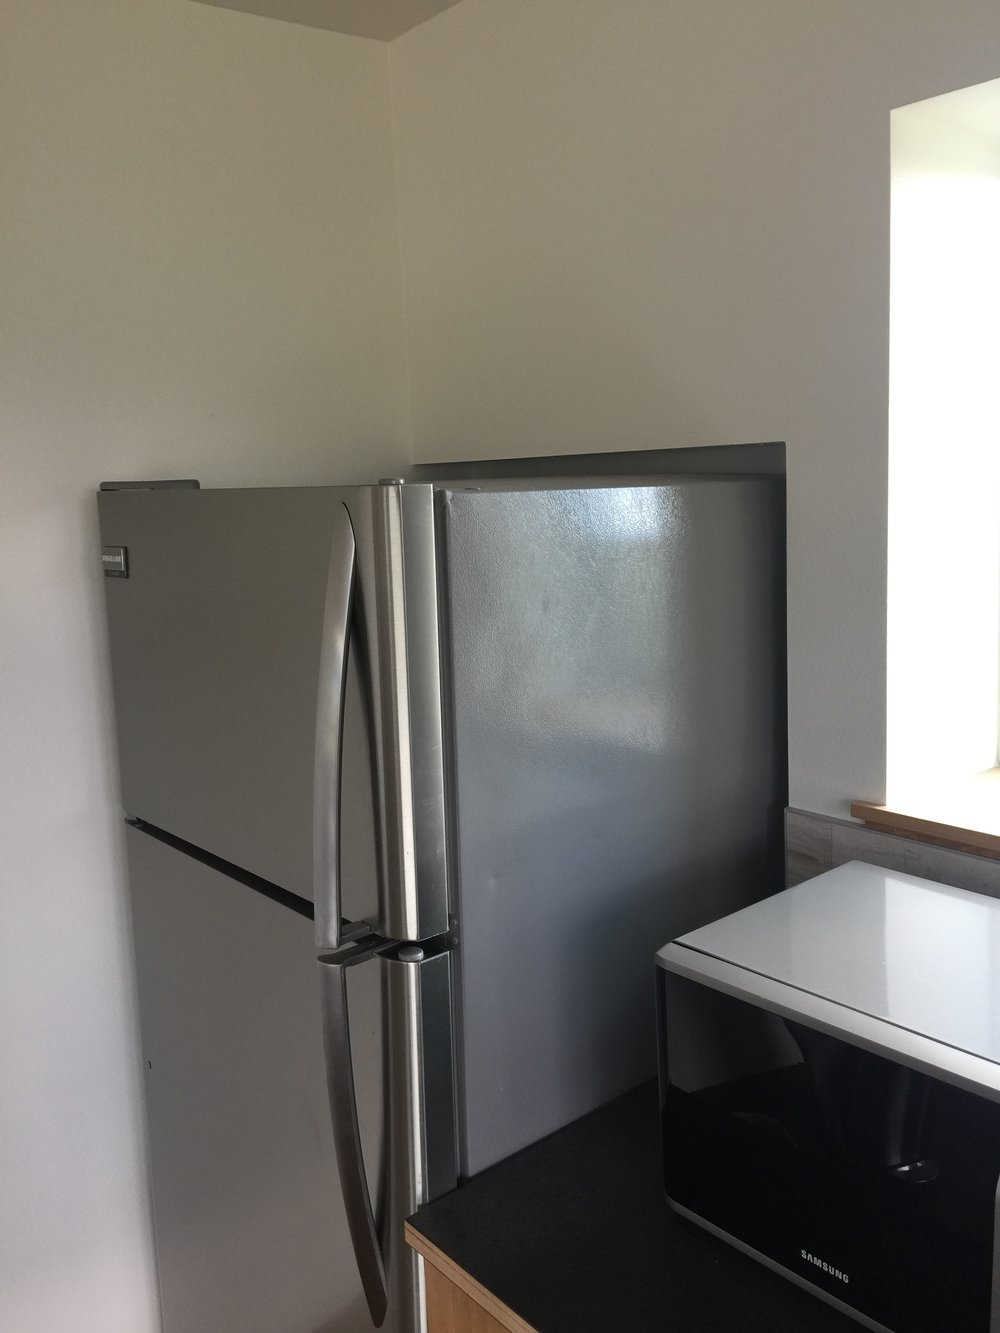 Firring out the kitchen wall for the makeup air vent also allowed us to inset the refrigerator so the door is in line with the edge of the counter, almost like a countertop-depth appliance.